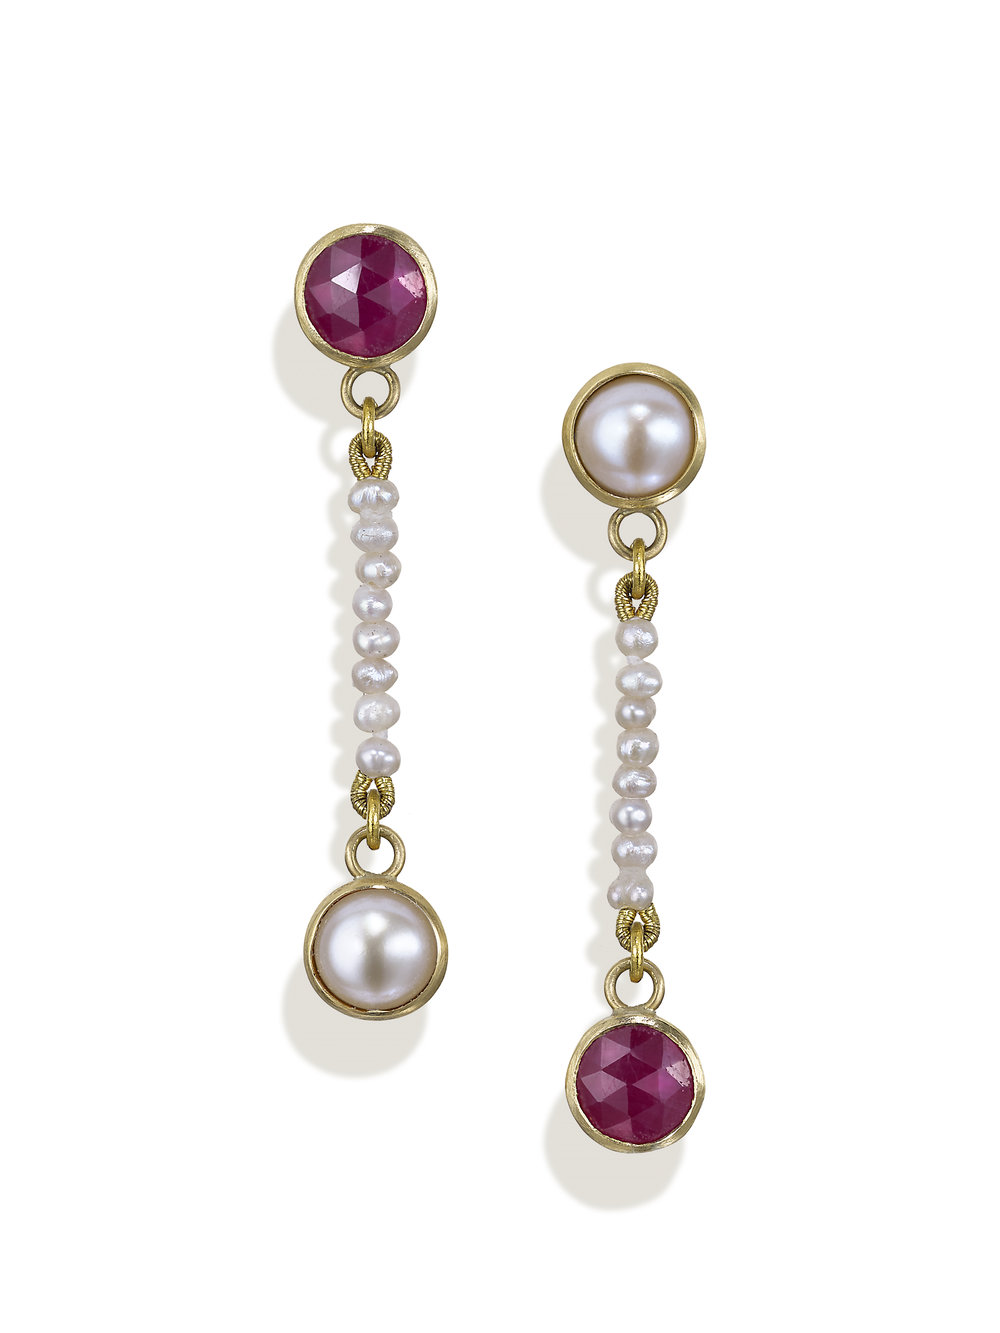 susi-hines-ruby-pearl-earrings.jpg